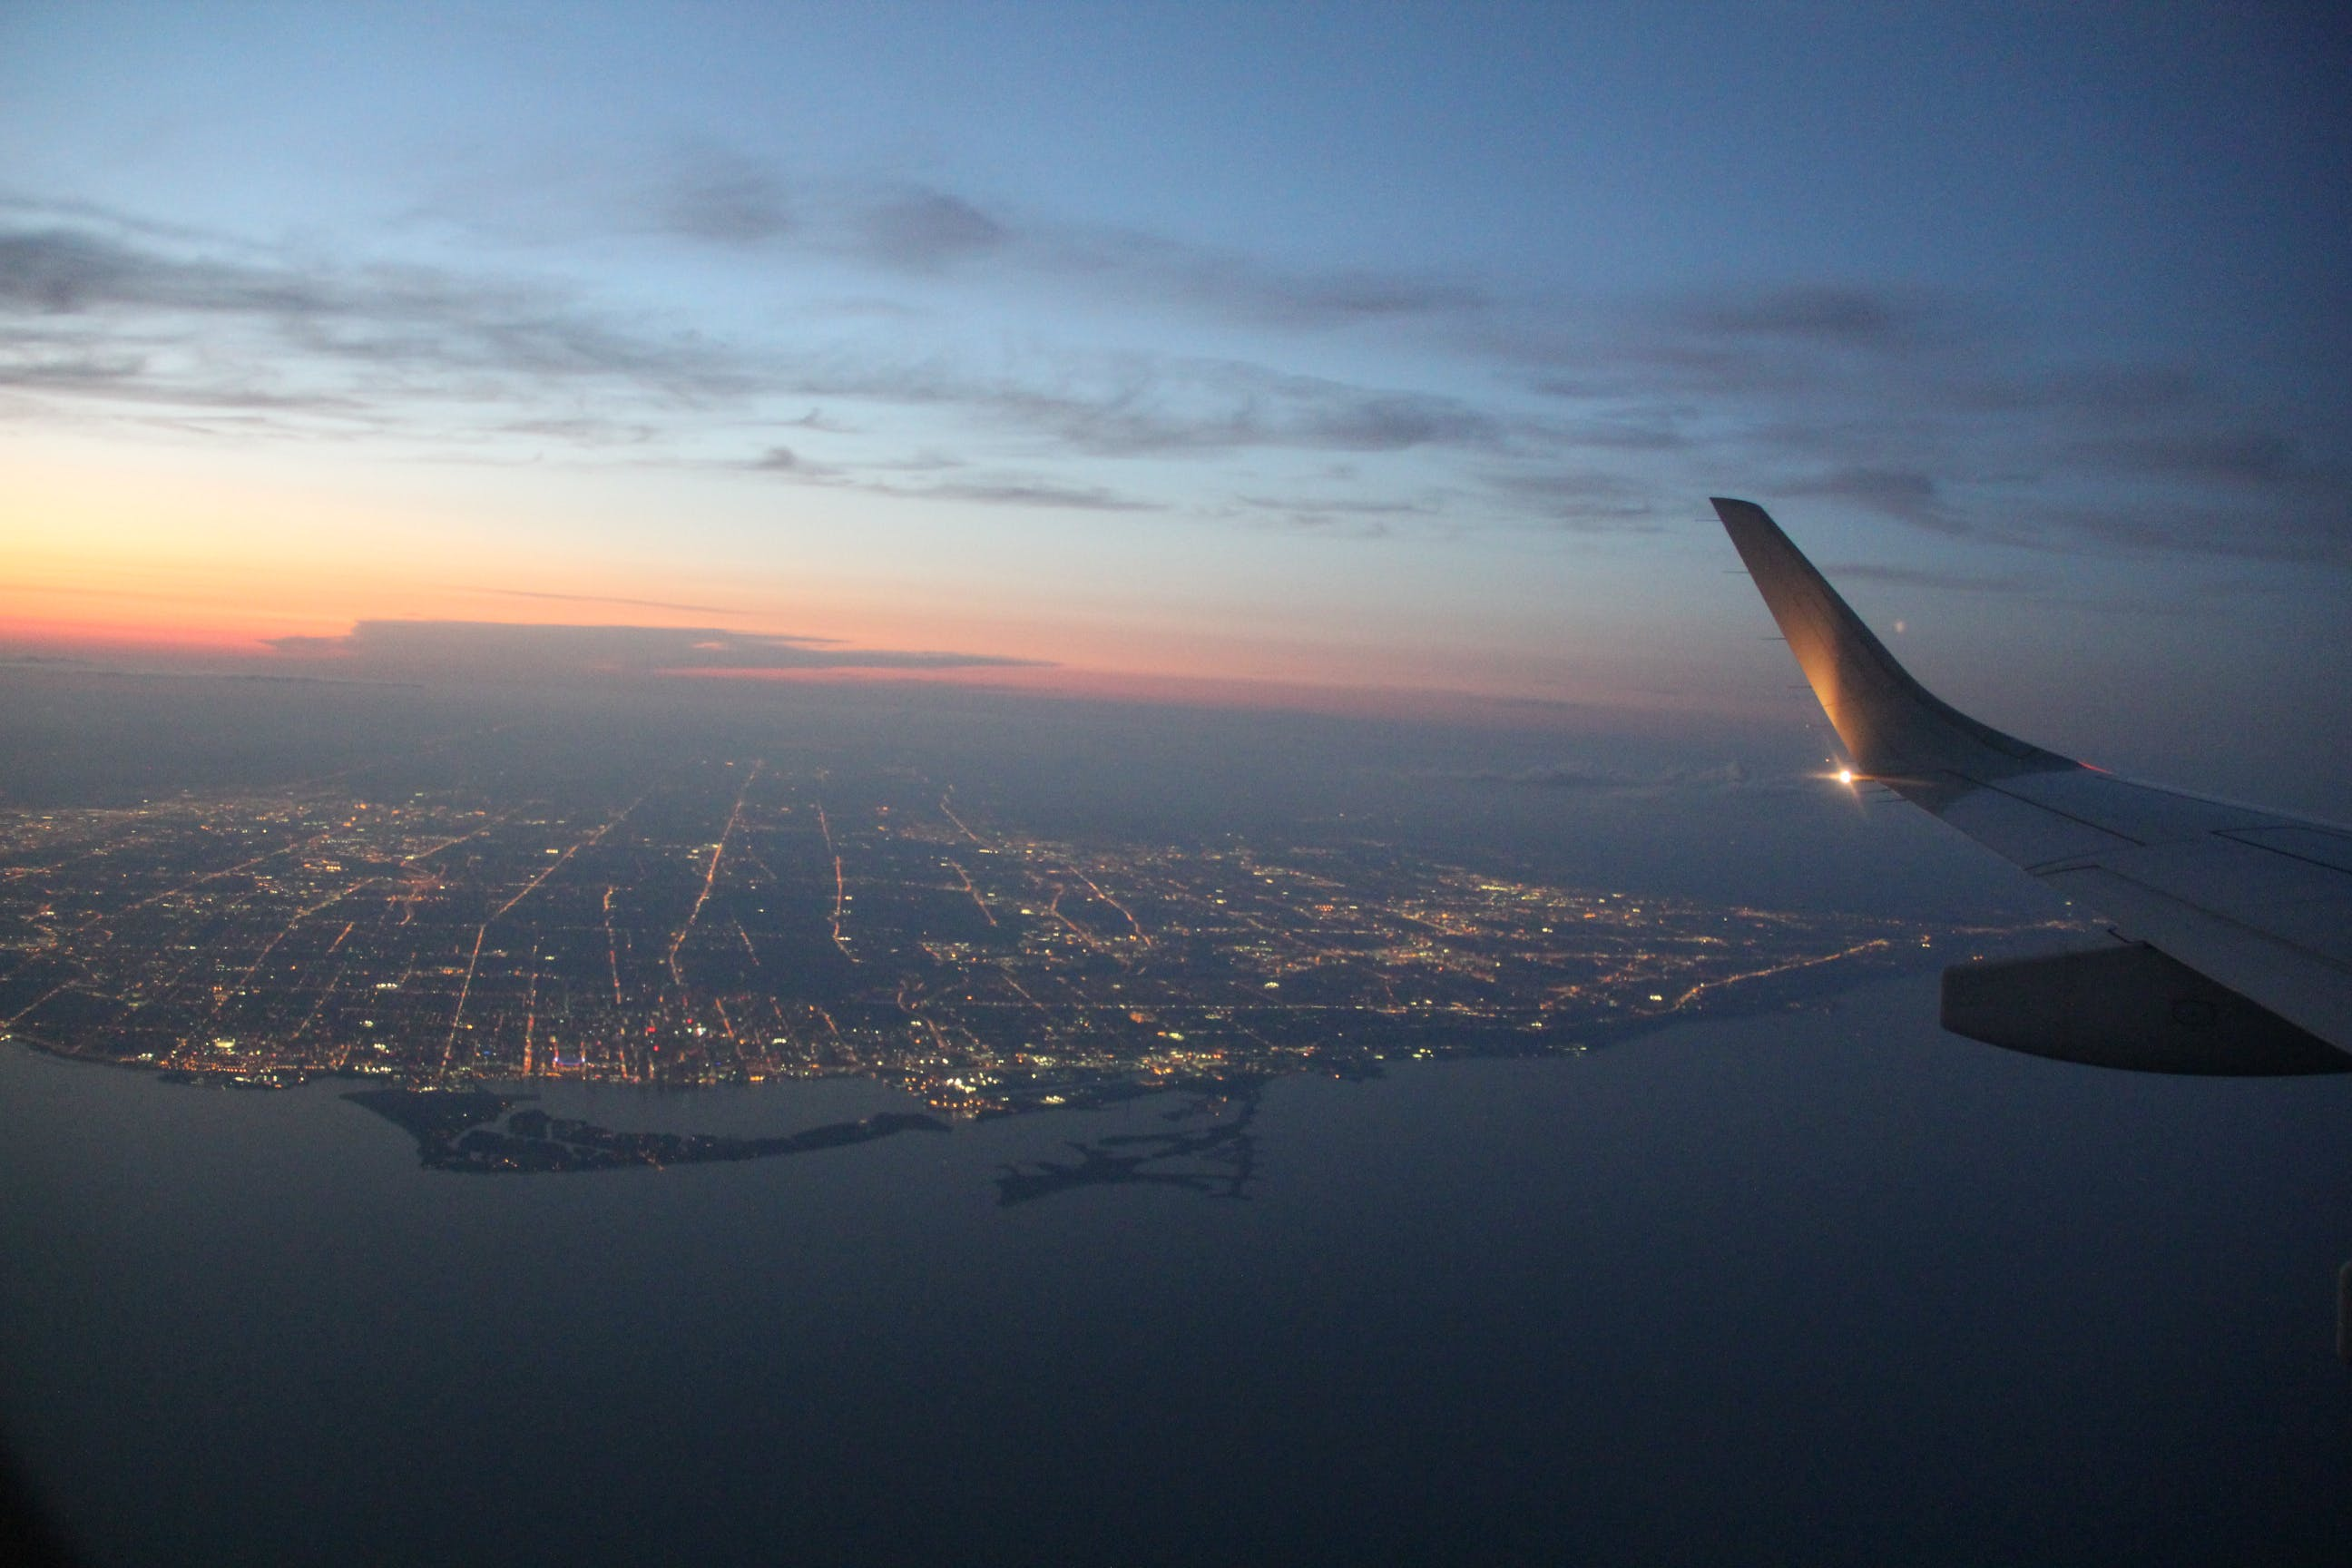 Free stock photo of aircraft window view, Beautiful sunset viewed from airplane, fly high, Nice sunset sky